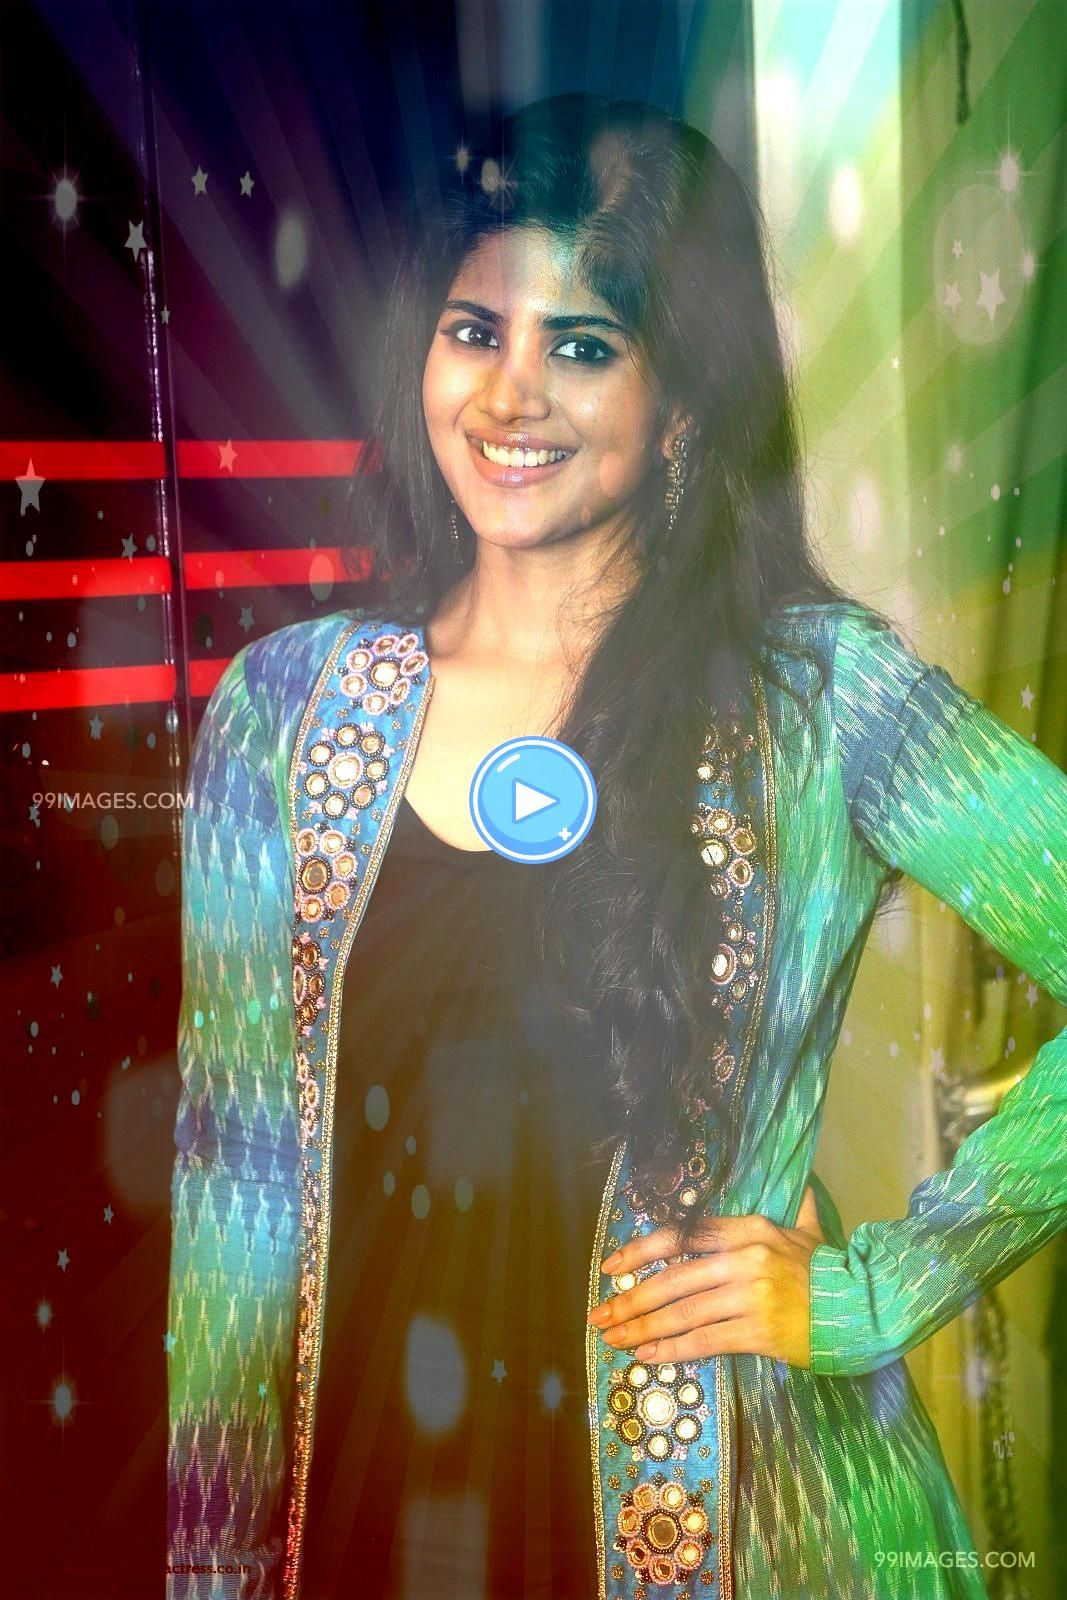 Akash HD Photos  Wallpapers 1080p 5550 Megha Akash HD Photos  Wallpapers 1080p 5550 Download Latest Megha Akash HD Photos 1080p in 1080p HD quality to use as your Android...